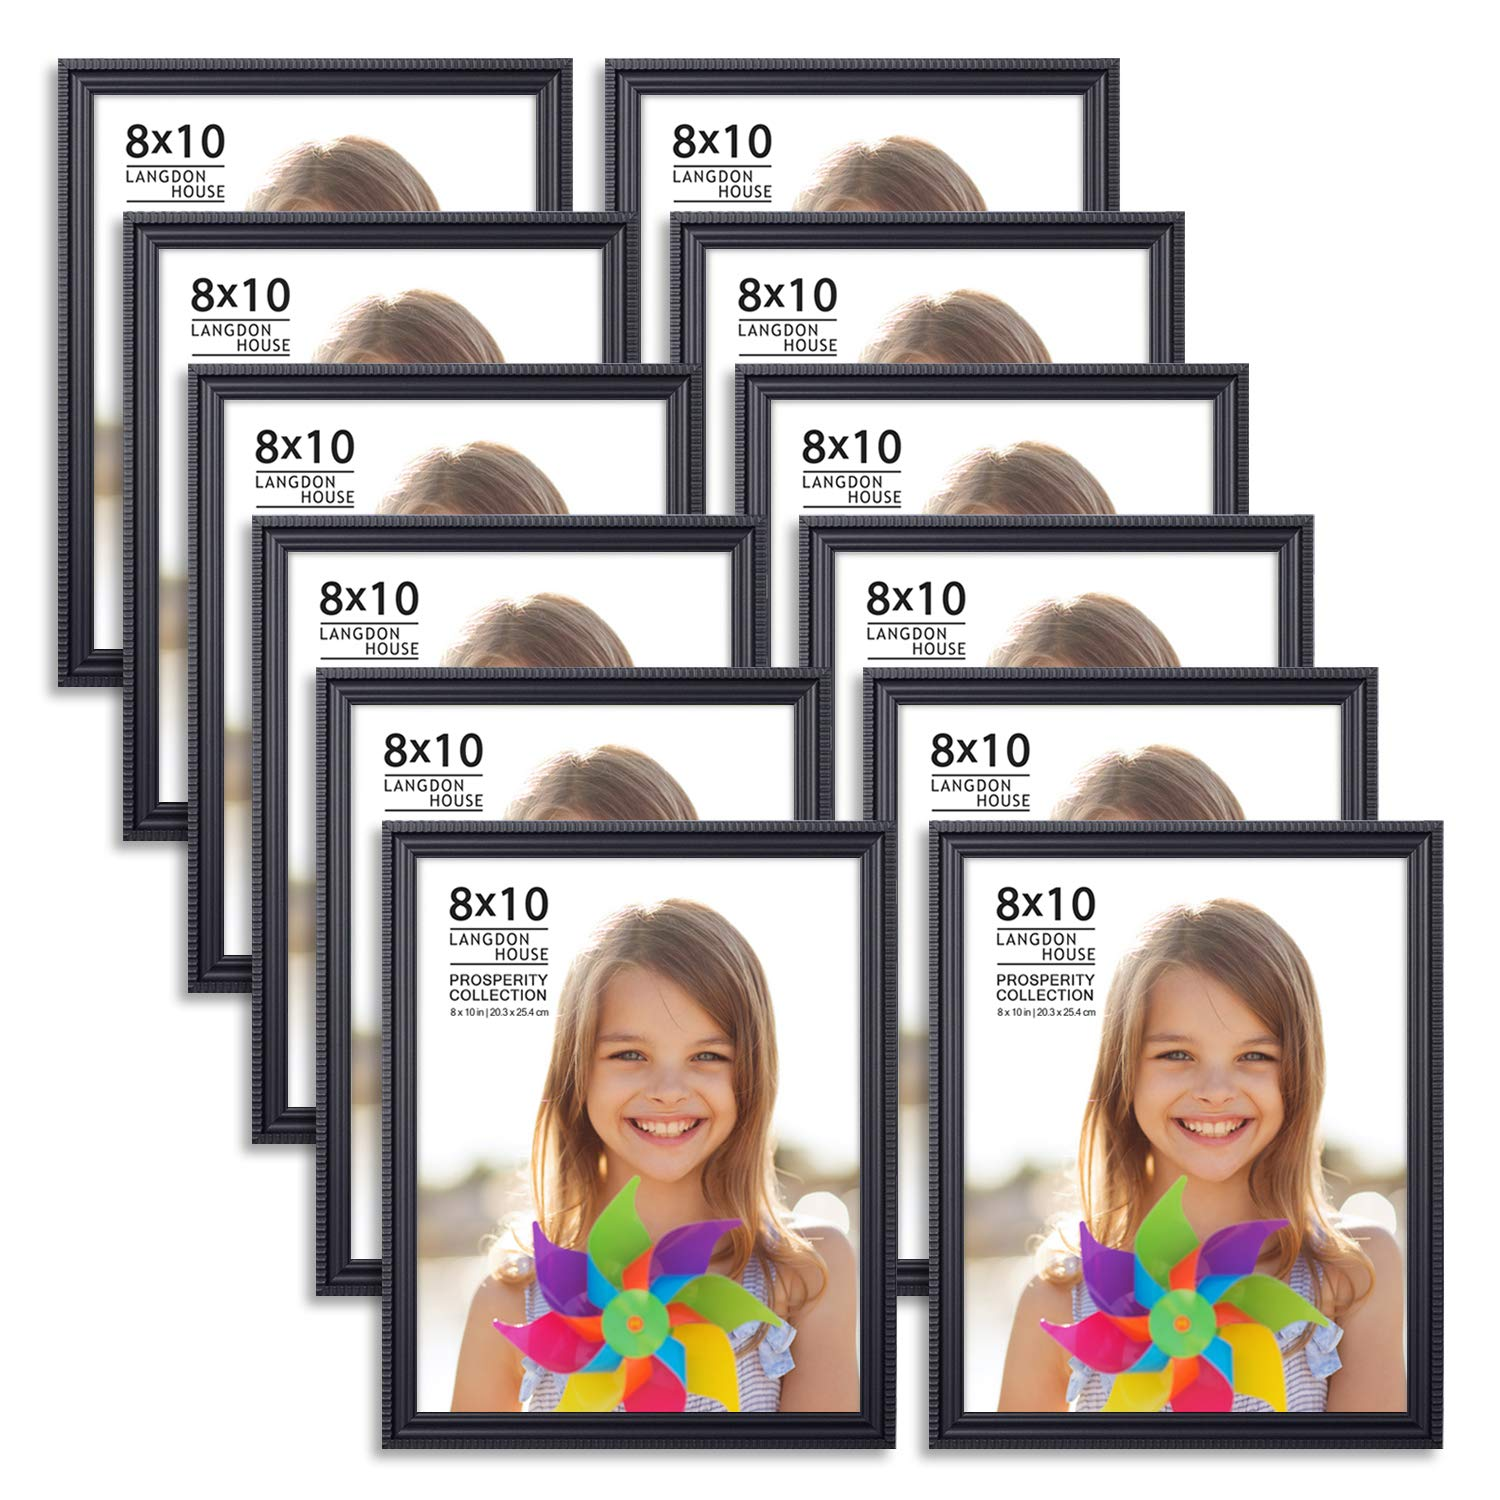 Langdons 8x10 Picture Frames (12 Pack, Black) Black Picture Frame Set, Wall Mount or Table Top, Set of 12 Prosperity Collection